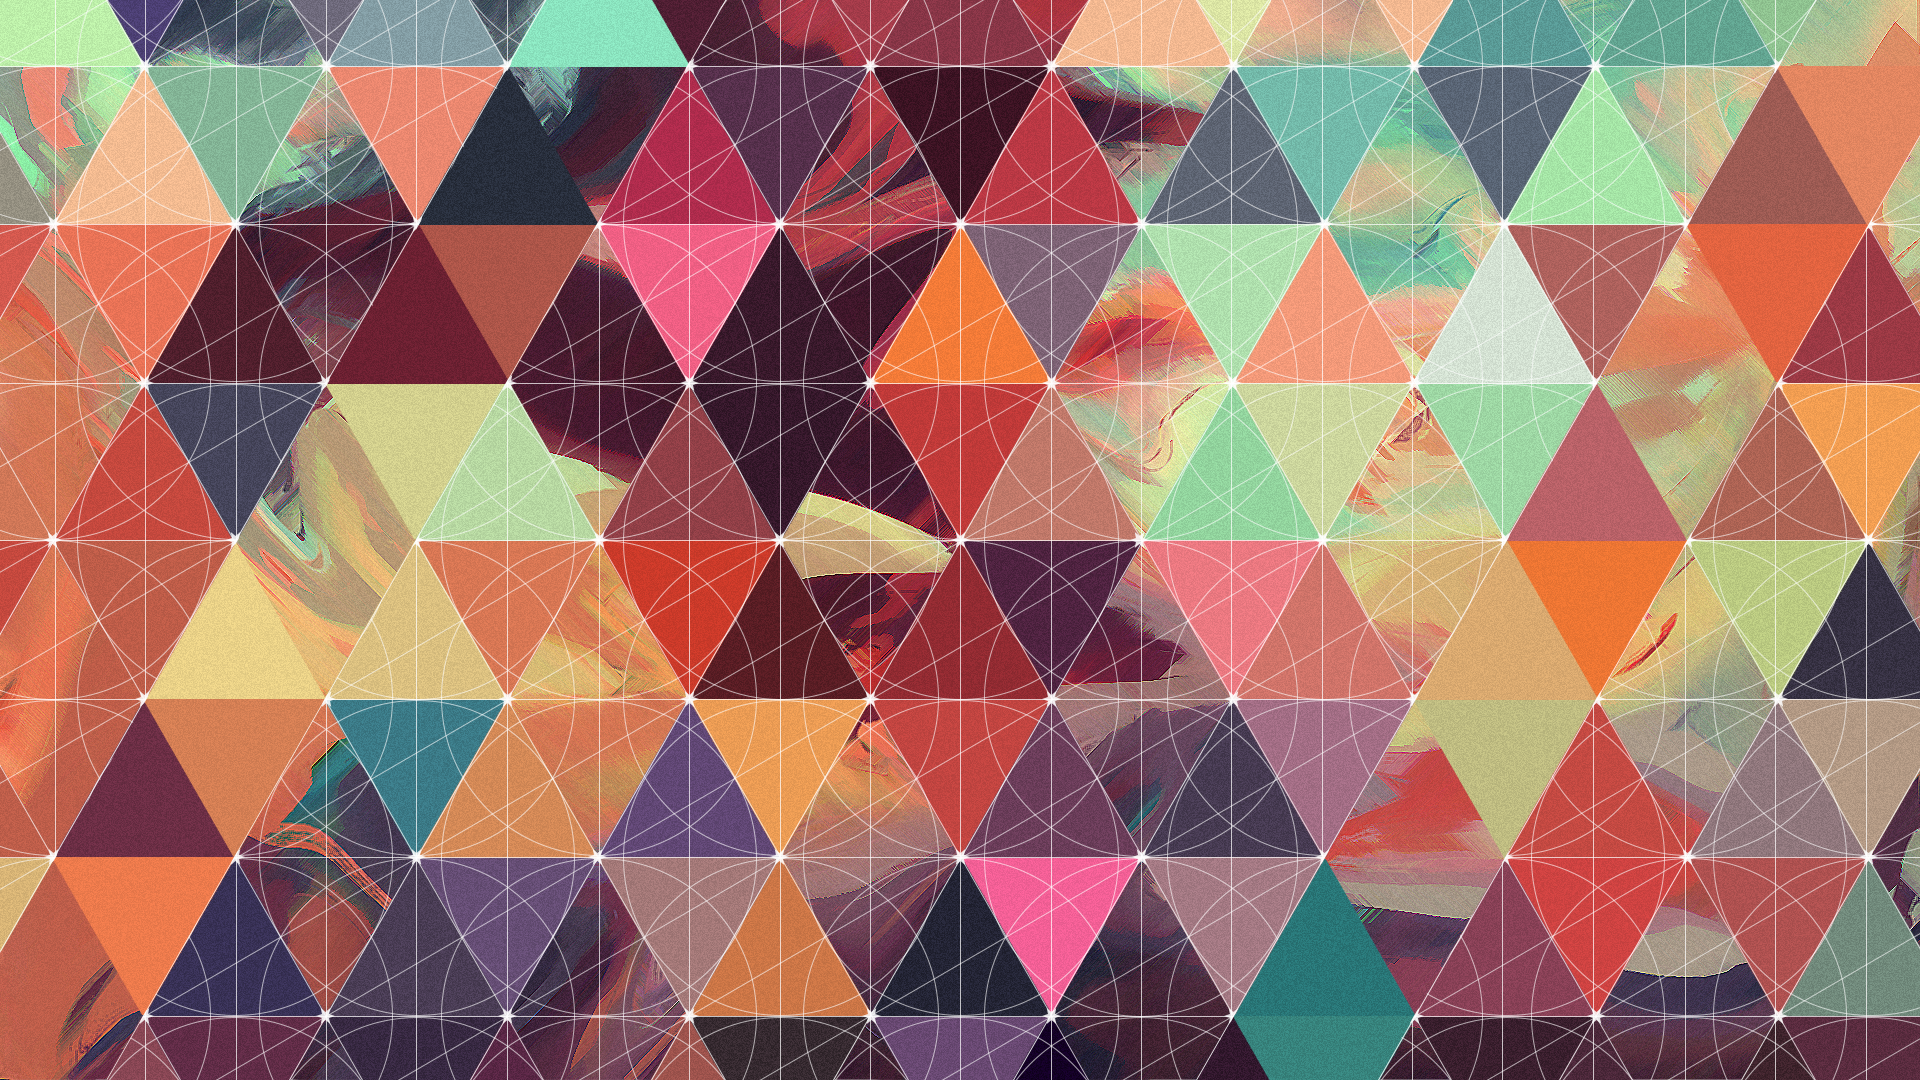 I made a geometric/abstract wallpaper today (1920x1080)